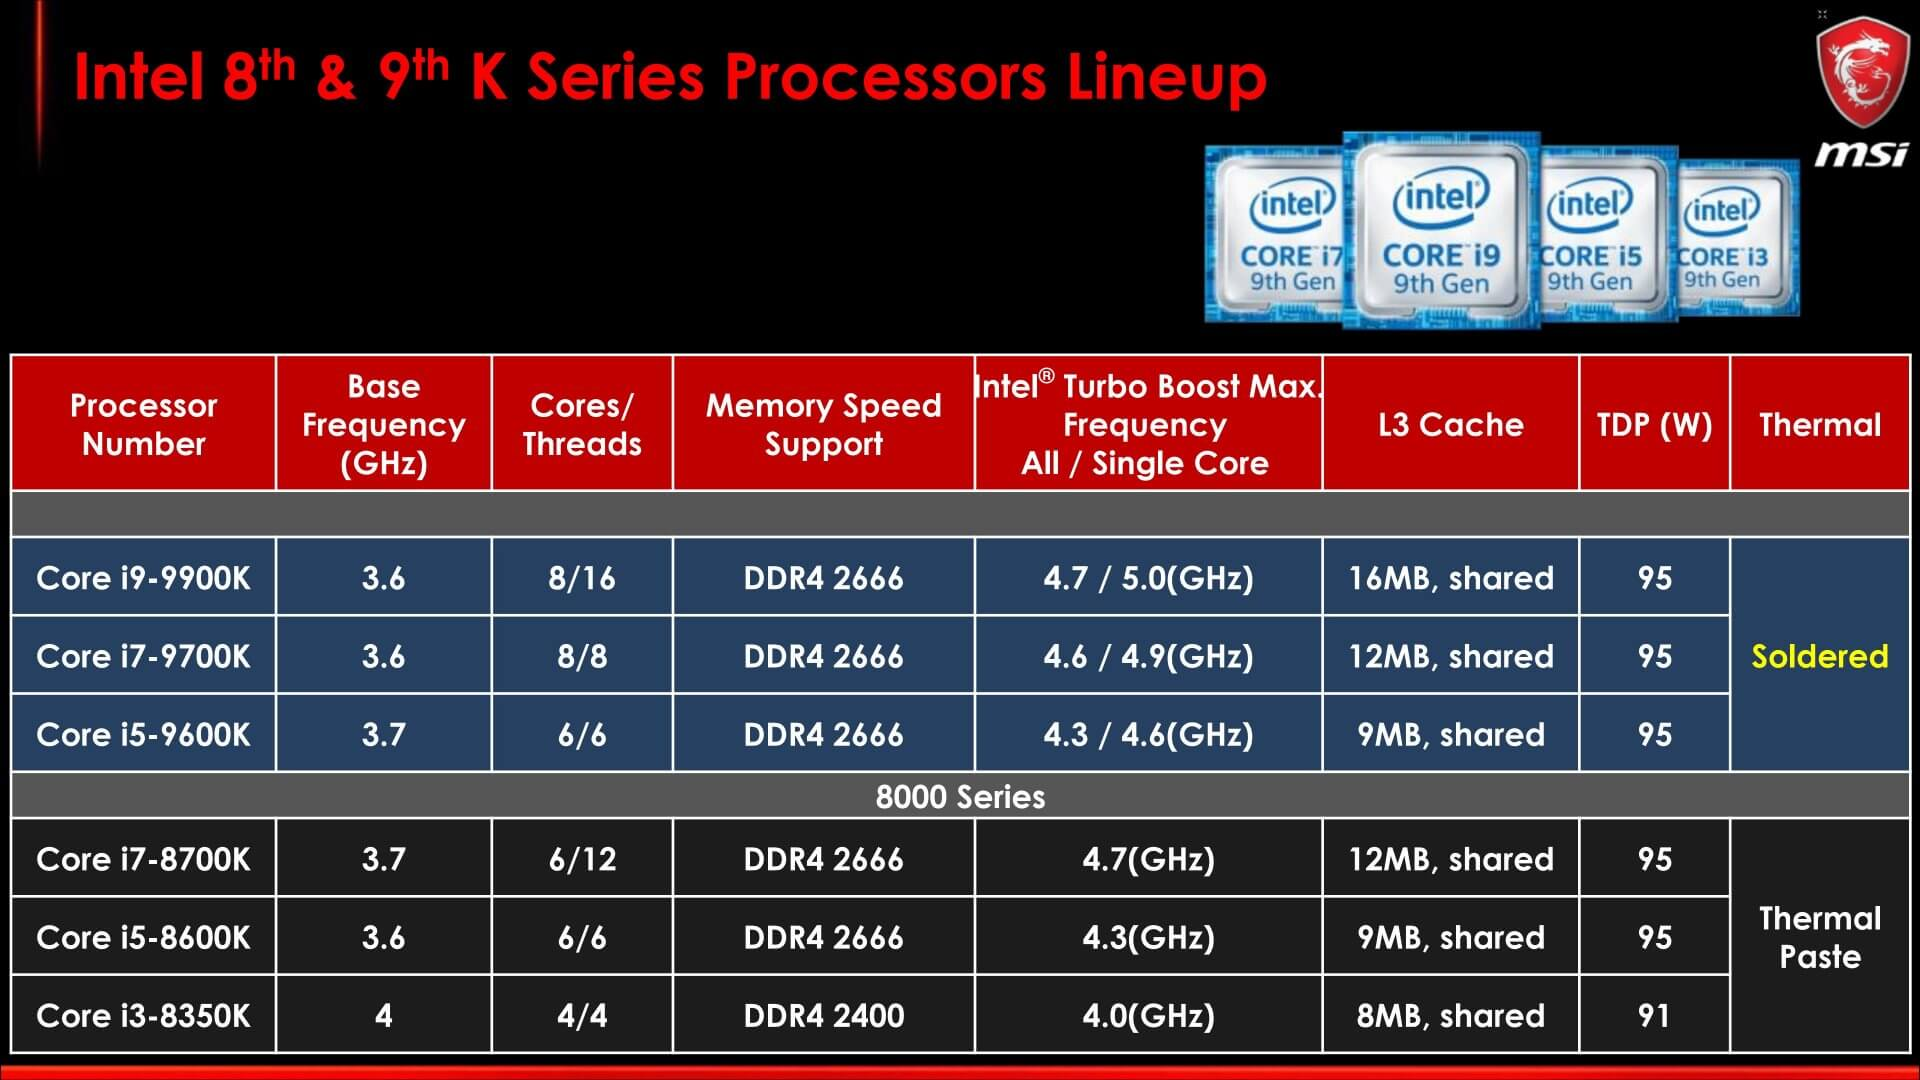 Intel launches new Z390 chipset, 9th-gen Core CPUs incoming